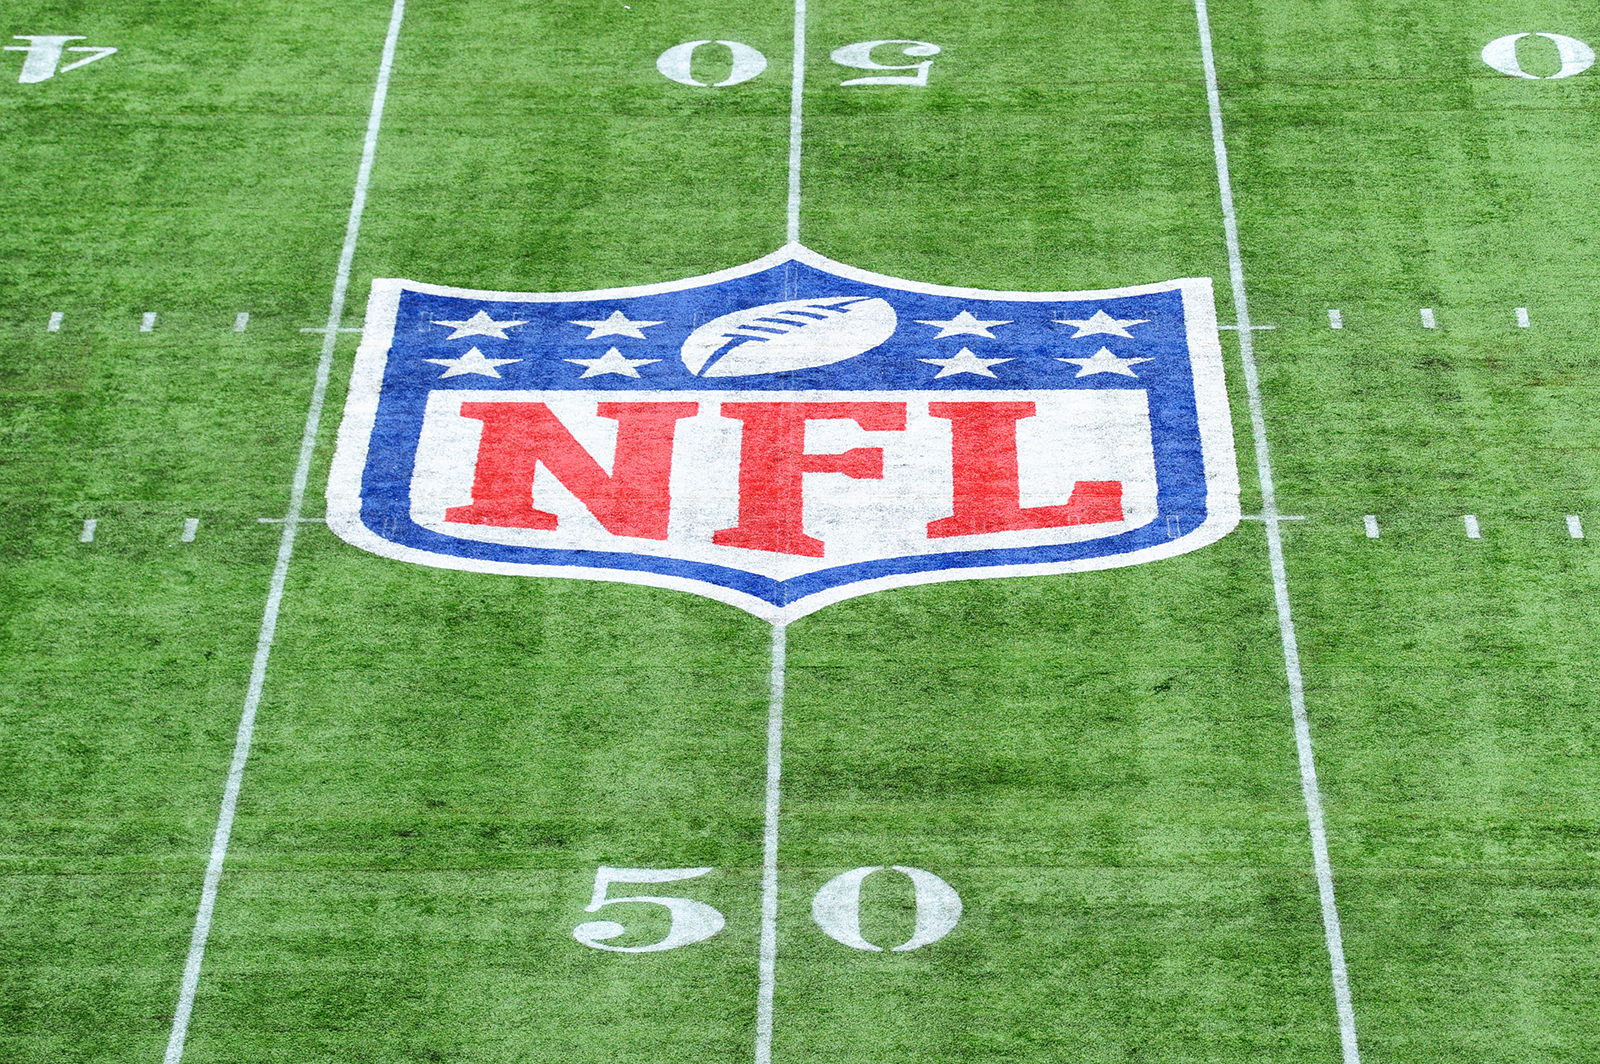 The NFL logo is seen on the field before a game between the Carolina Panthers and Tampa Bay Buccaneers in London on October 13, 2019.